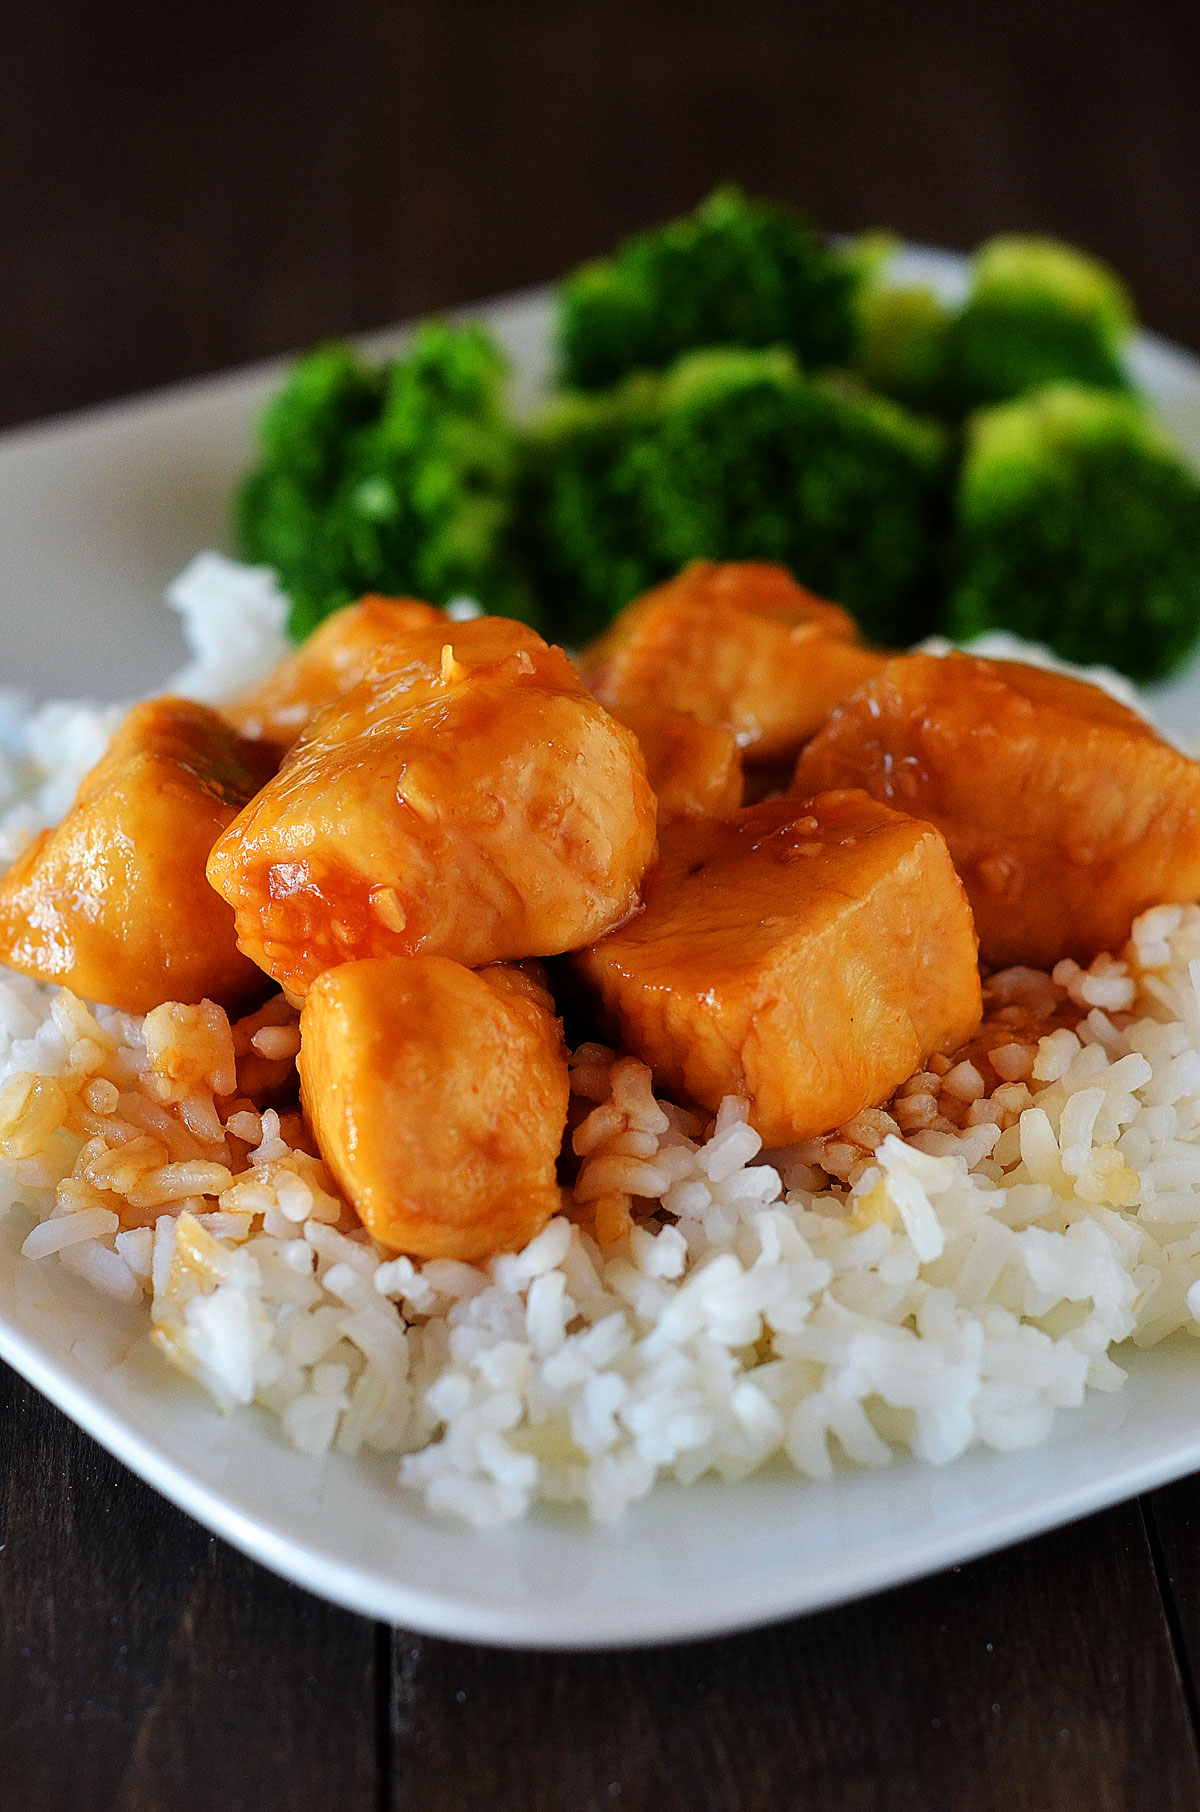 Bourbon Street Chicken is boneless chicken breasts sautéed in a sweet and savory sauce. Life-in-the-Lofthouse.com